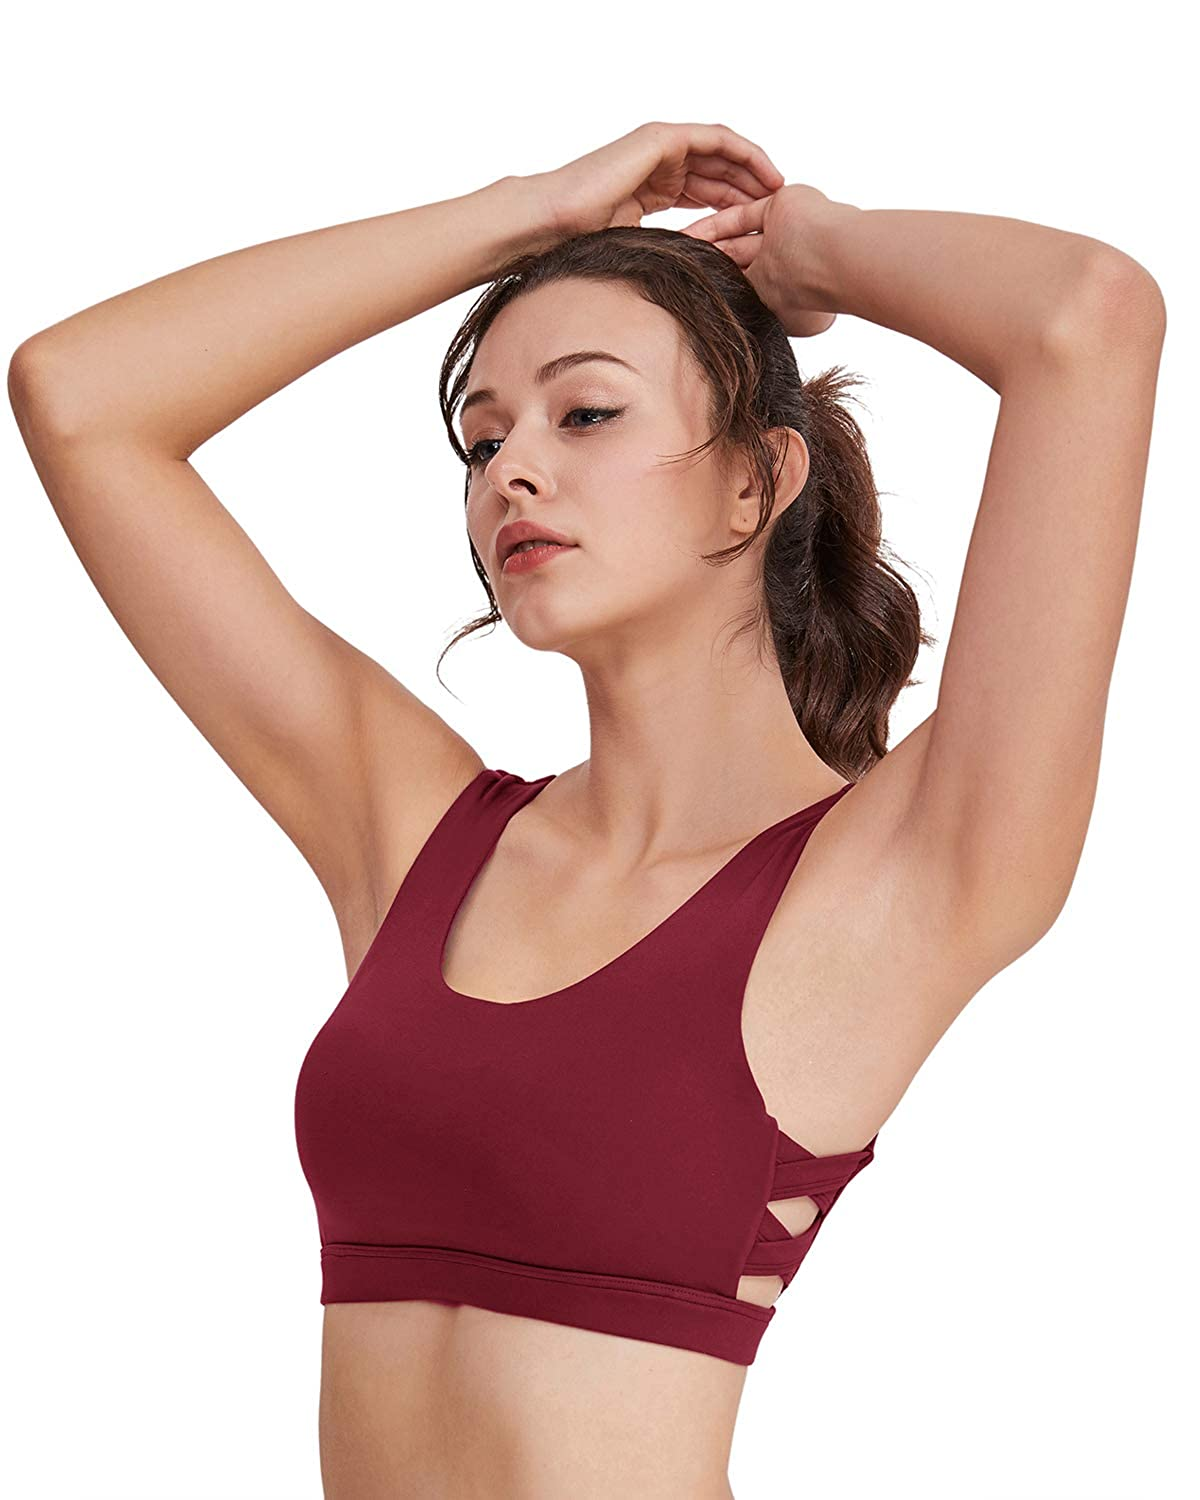 HAIVIDO Womens Medium Impact Scoopneck Soft Cup Keyhold Back Coverage Sports Bra